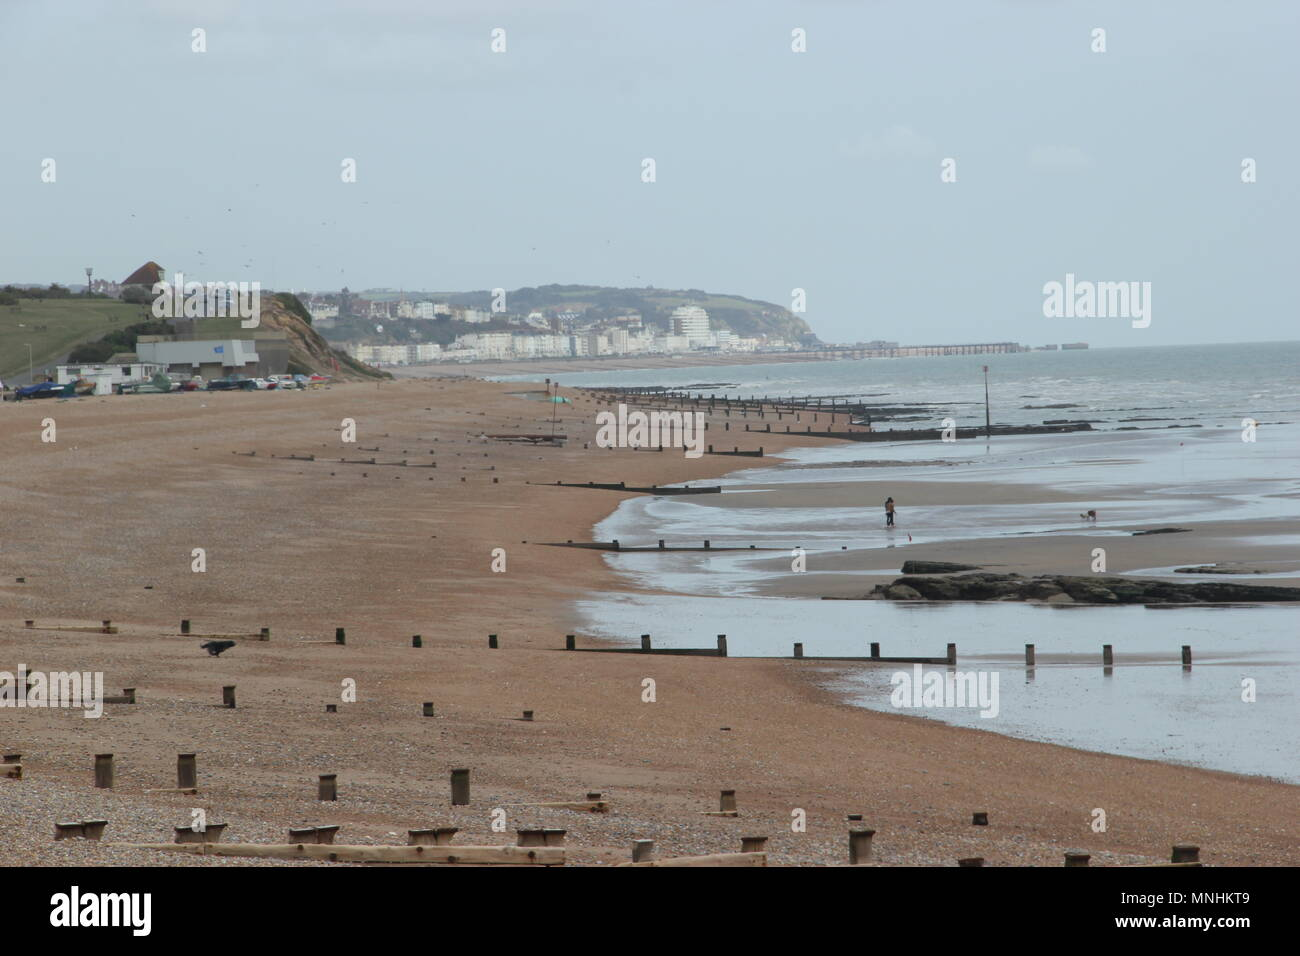 Breakwaters on the beach, Bexhill-on-Sea, Sussex - Stock Image